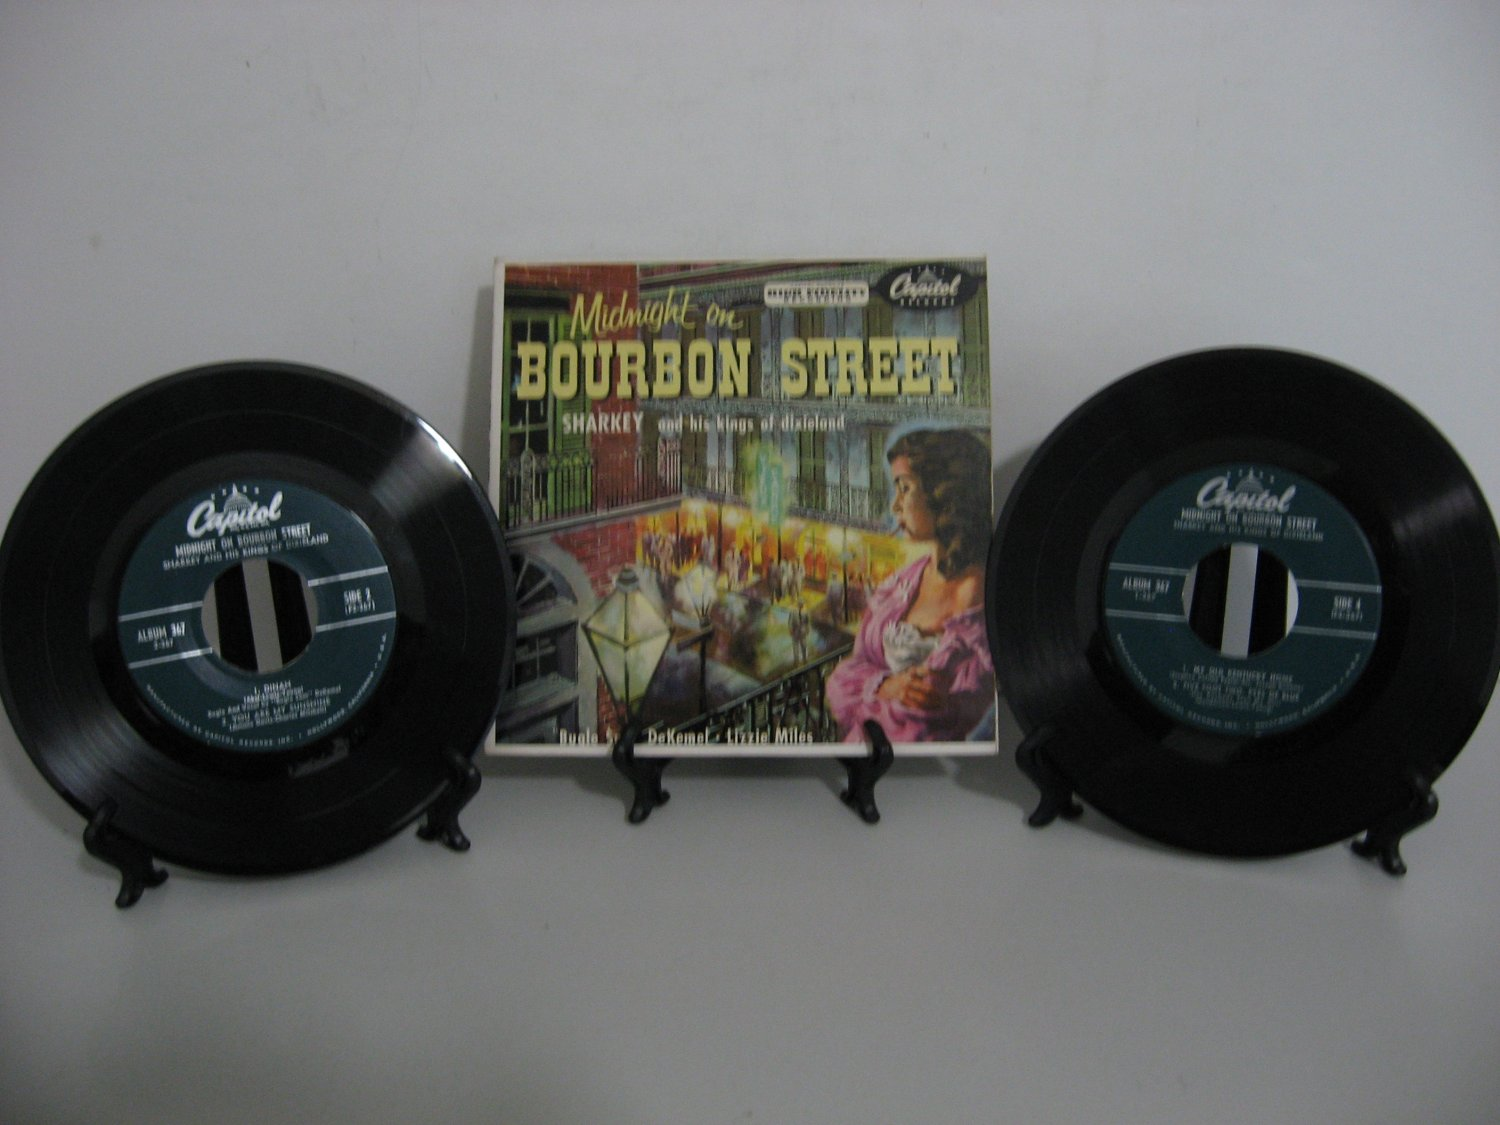 Sharkey and his kings of Dixieland - Midnight On Bourbon Street - Double Record Set!